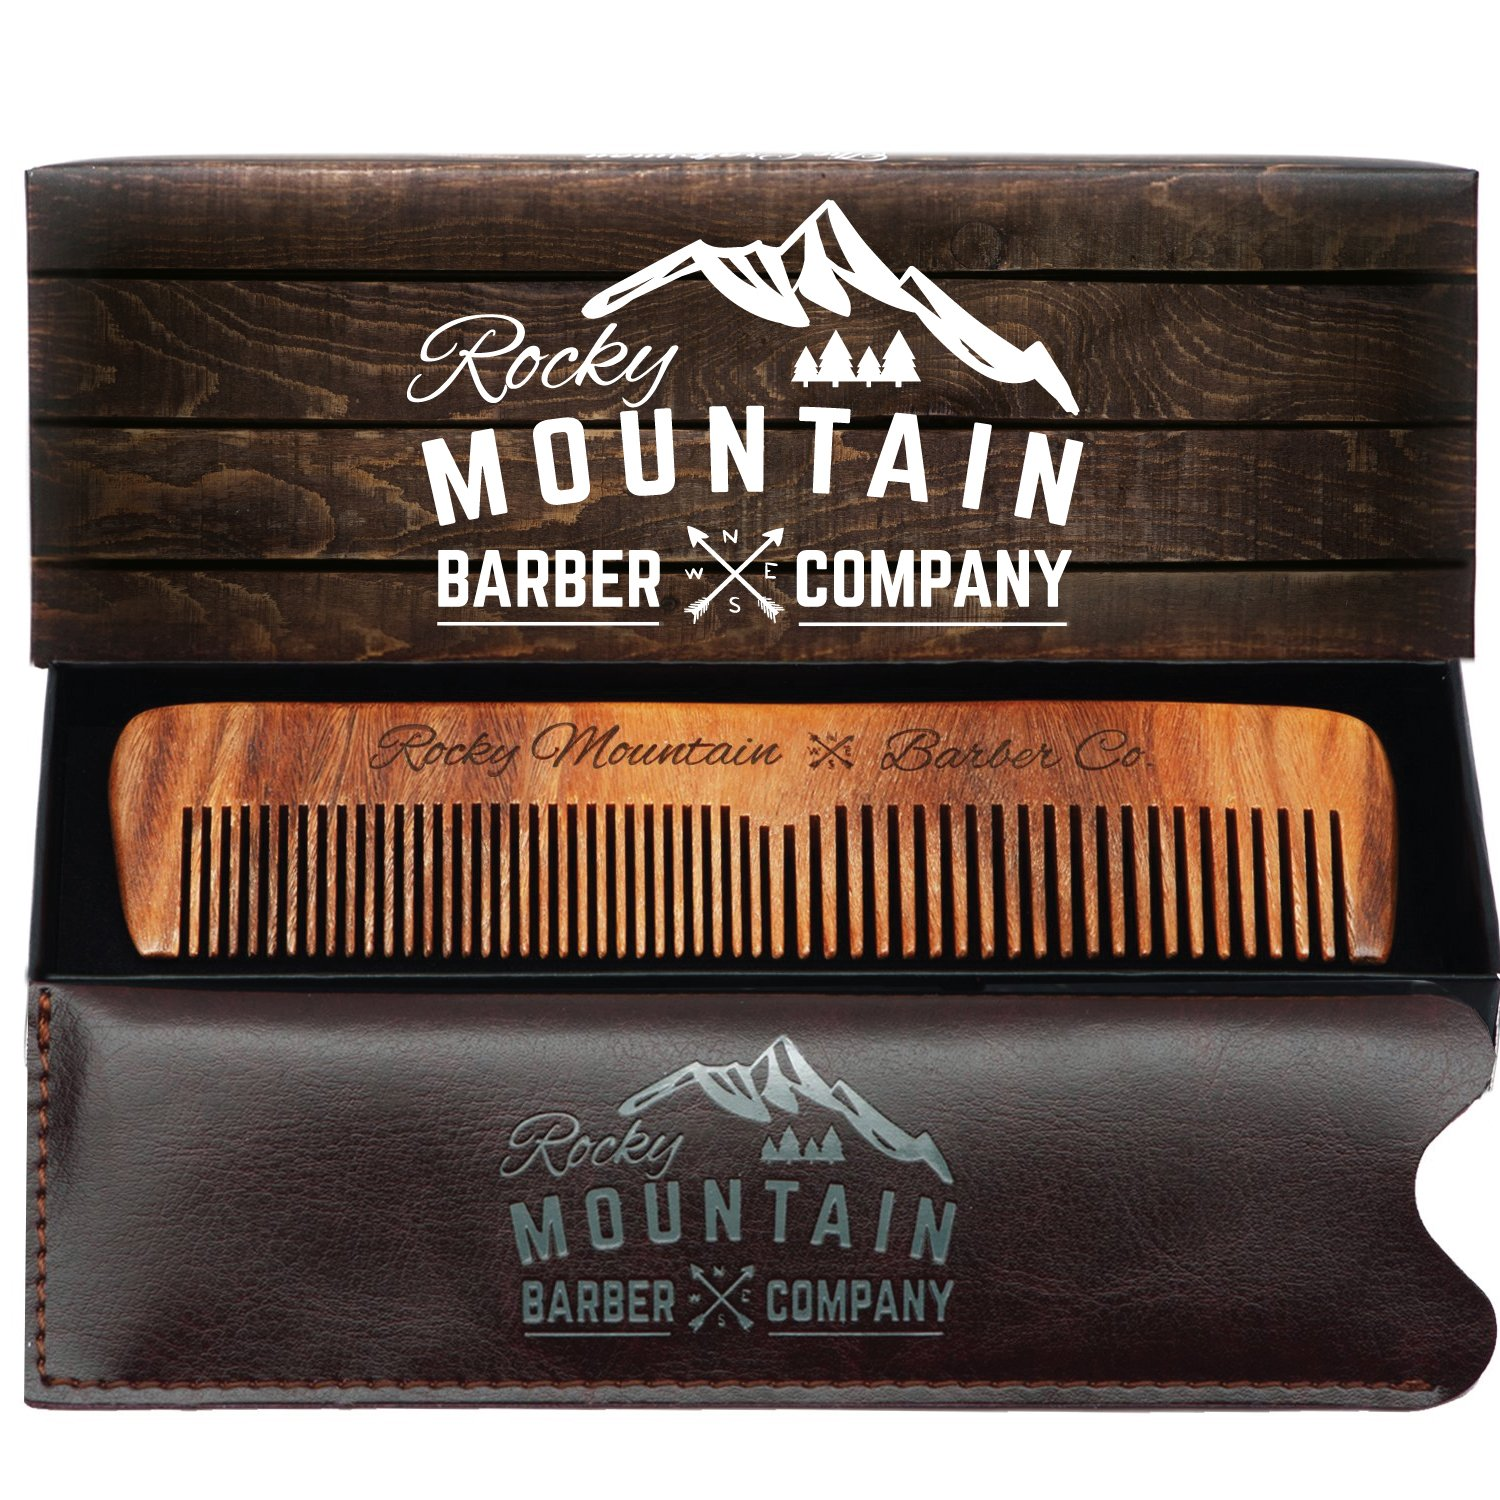 Hair Comb - Wood with Anti-Static & No Snag with Fine and Medium Tooth for Head Hair, Beard, Mustache with Premium Carrying Pouch in Design in Gift Box by Rocky Mountain Rocky Mountain Barber Company HC-30